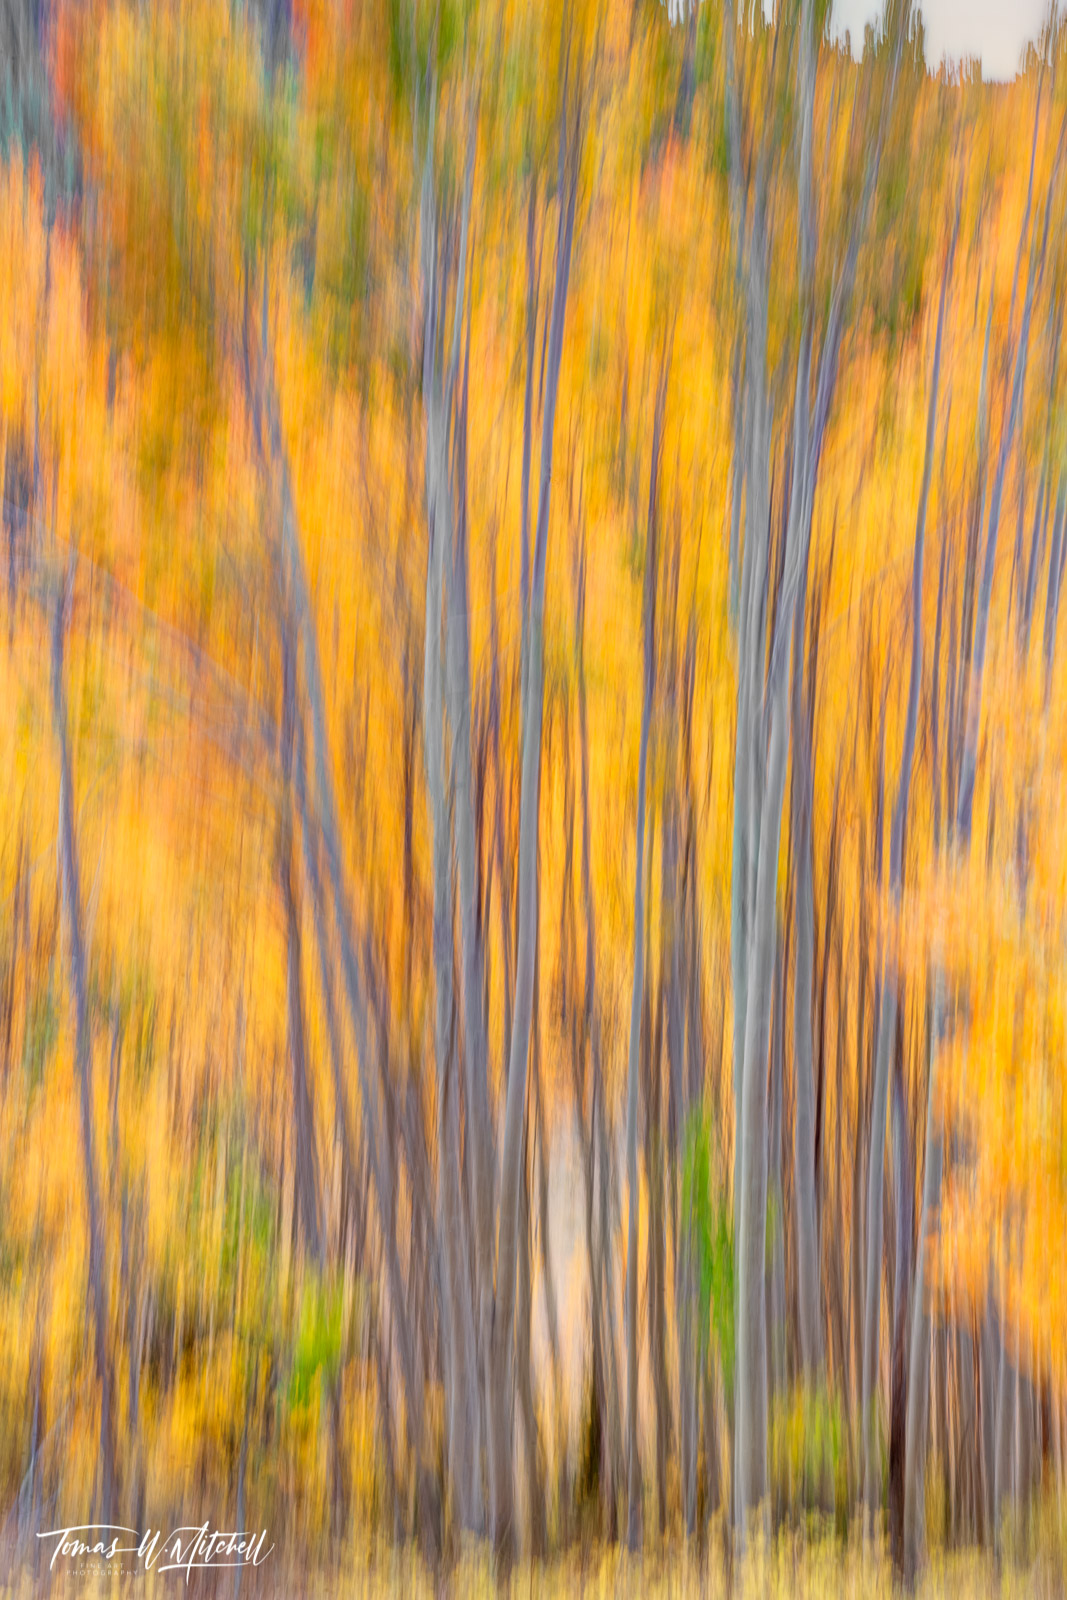 limited edition, fine art, prints, photograph, blurry, fall, leaves, trees, abstract, painted, white, gray, aspen, trunks, yellow, orange, photo